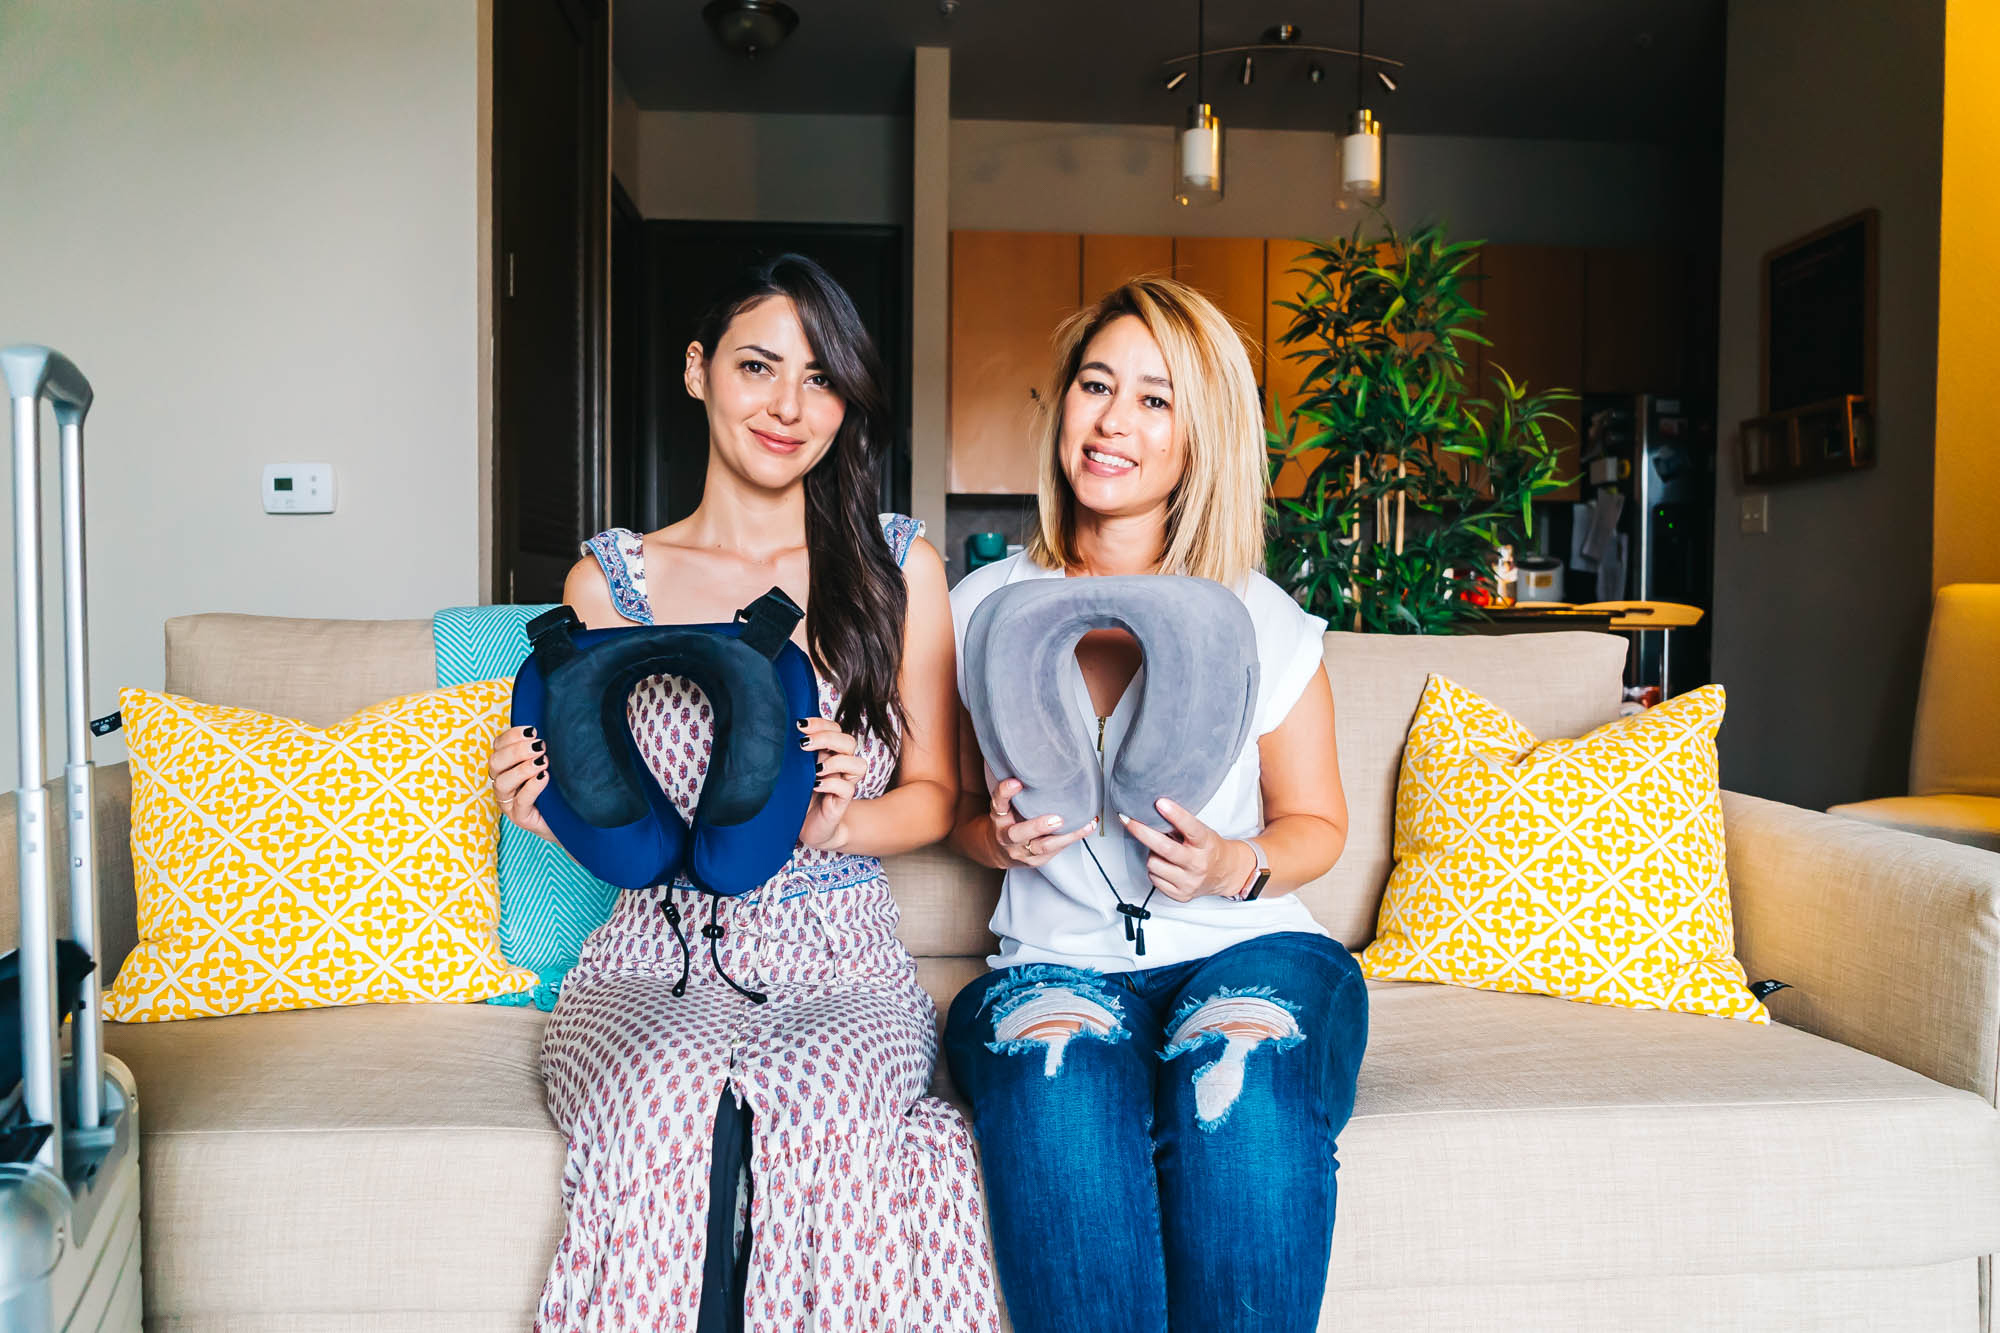 Candy holding the   Cabeau Evolution S3 Travel Pillow   and Crystal holding the   Cabeau Evolution Classic Travel Pillow